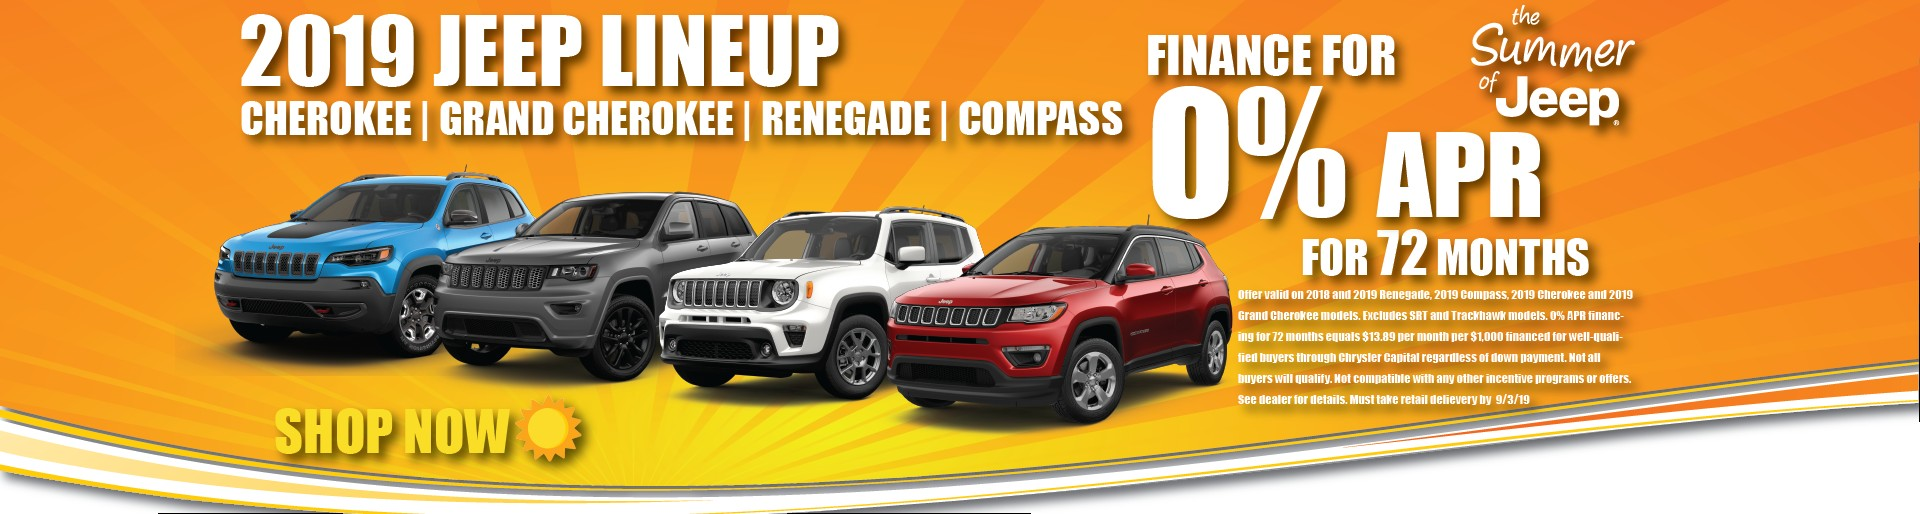 2019 Jeep Line Up